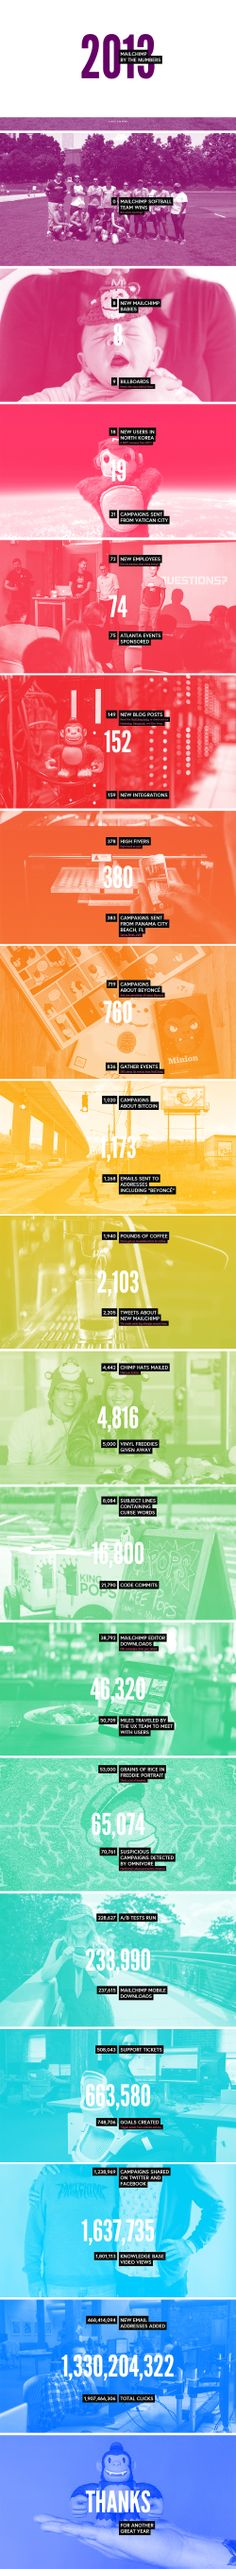 Mailchimp - 2013 by the numbers #webdesign #singlepage #onepage